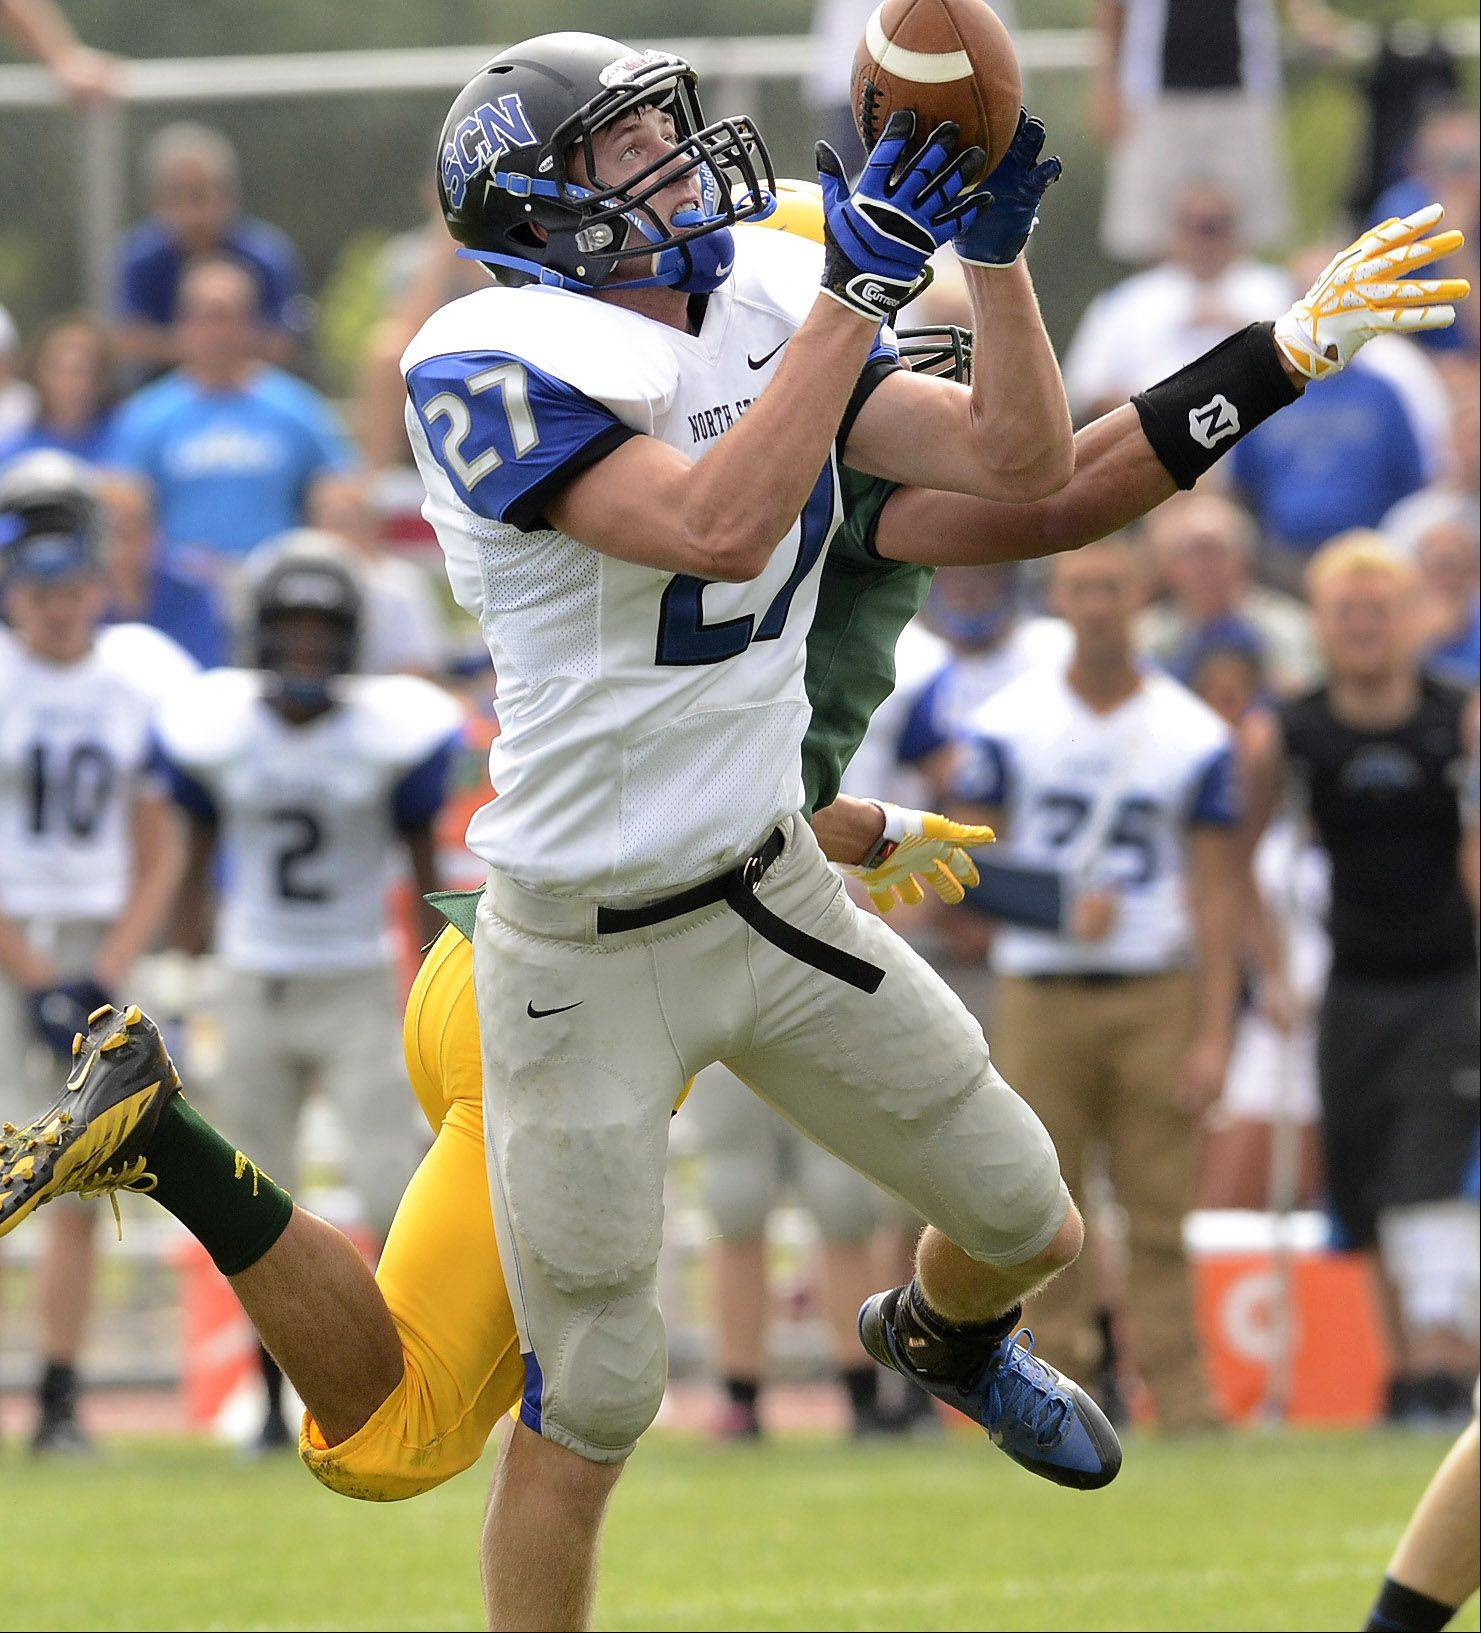 Week -1- Photos from the St. Charles North at Elk Grove football game on Saturday, Aug. 31.